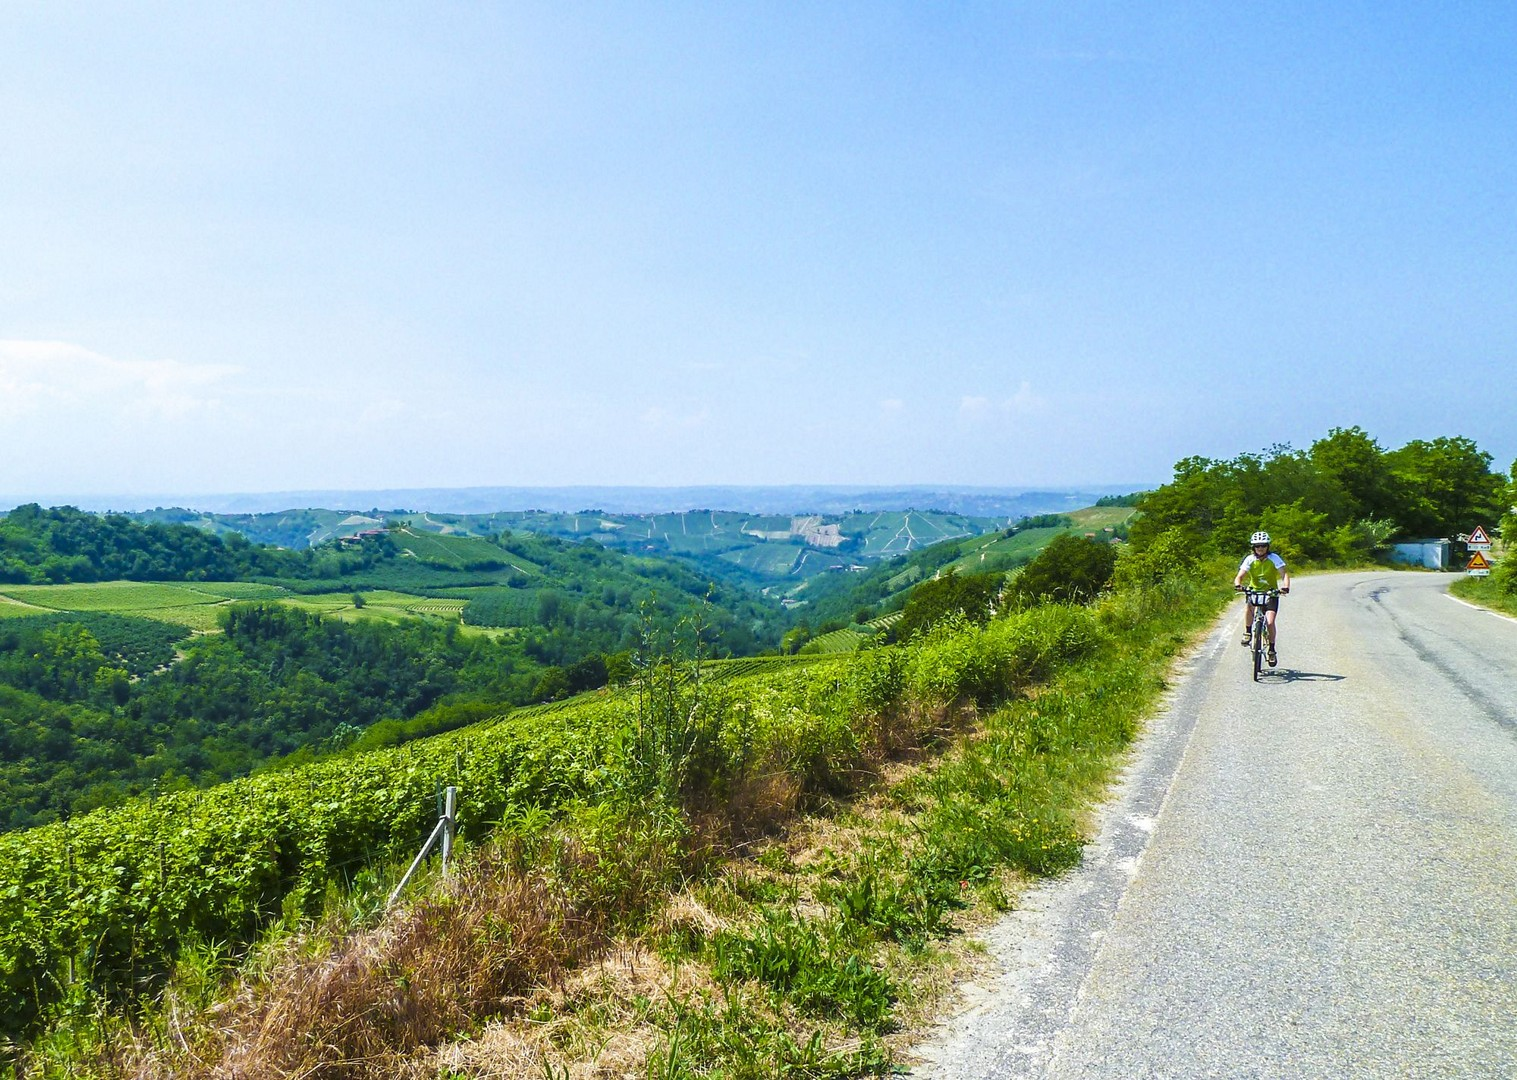 wine-tour-biking-barolo-barbaresco-nebbiolo-moscati-vineyard-culture-italy.jpg - Italy - Piemonte - Vineyards and Views - Self-Guided Leisure Cycling Holiday - Leisure Cycling